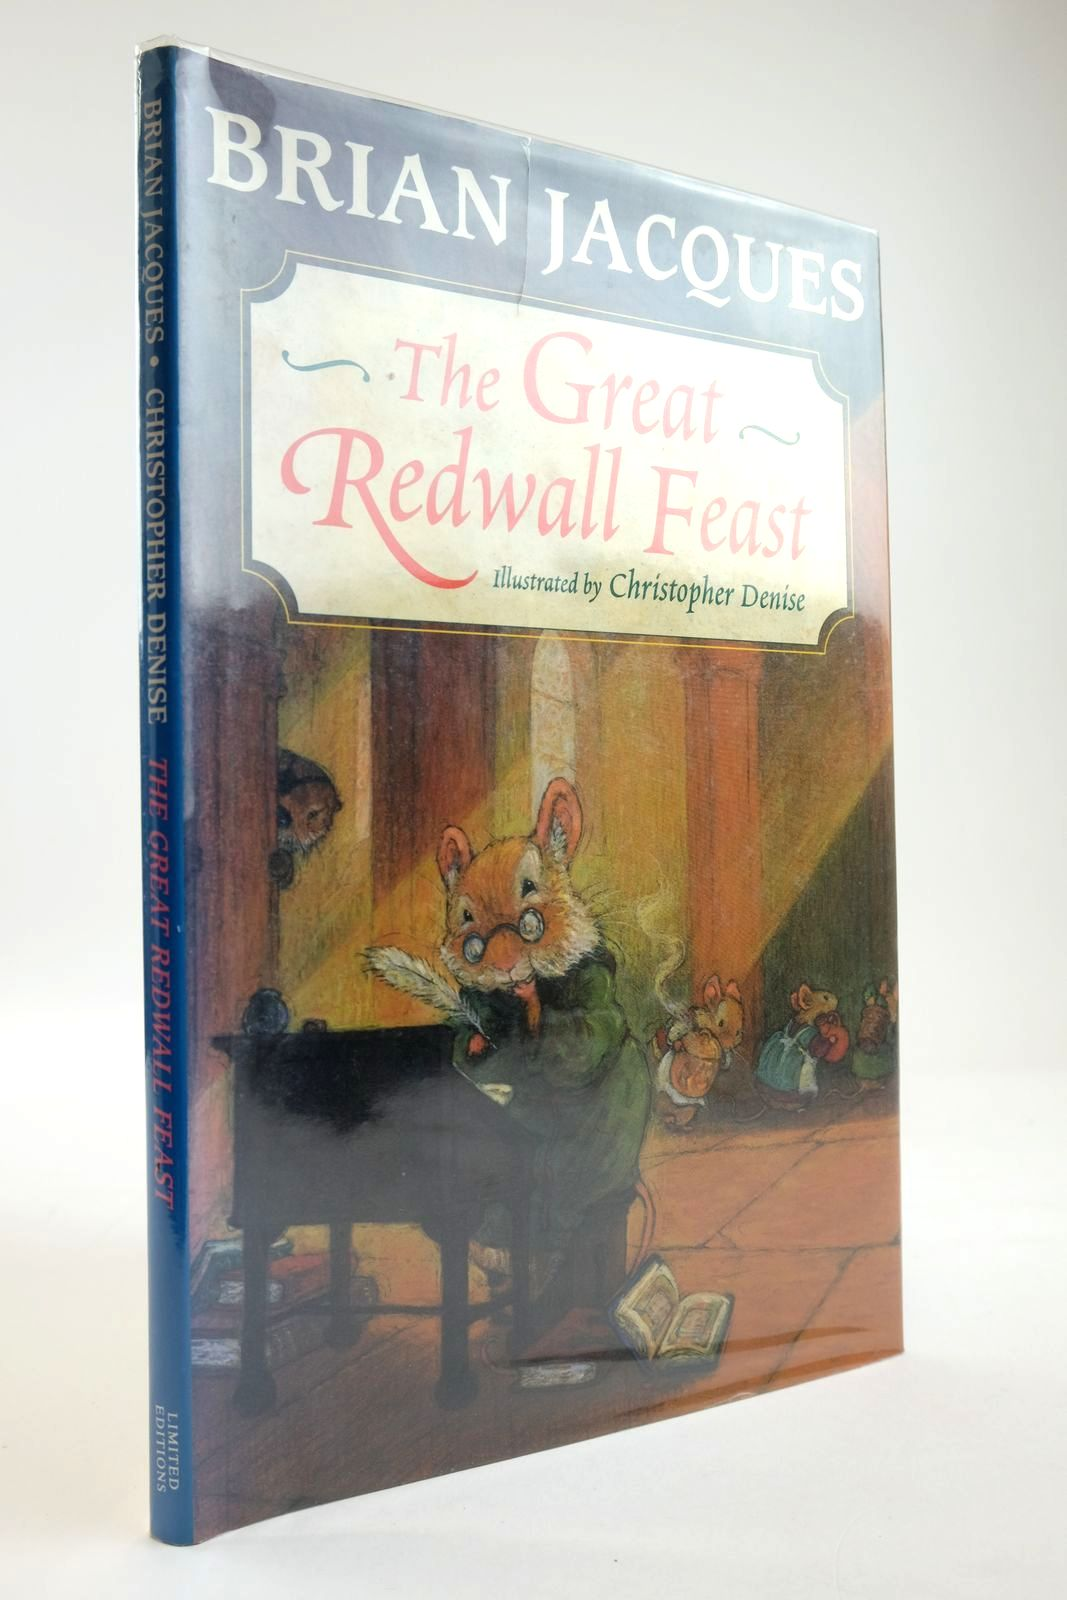 Photo of THE GREAT REDWALL FEAST written by Jacques, Brian illustrated by Denise, Christopher published by Limited Editions (STOCK CODE: 2133884)  for sale by Stella & Rose's Books